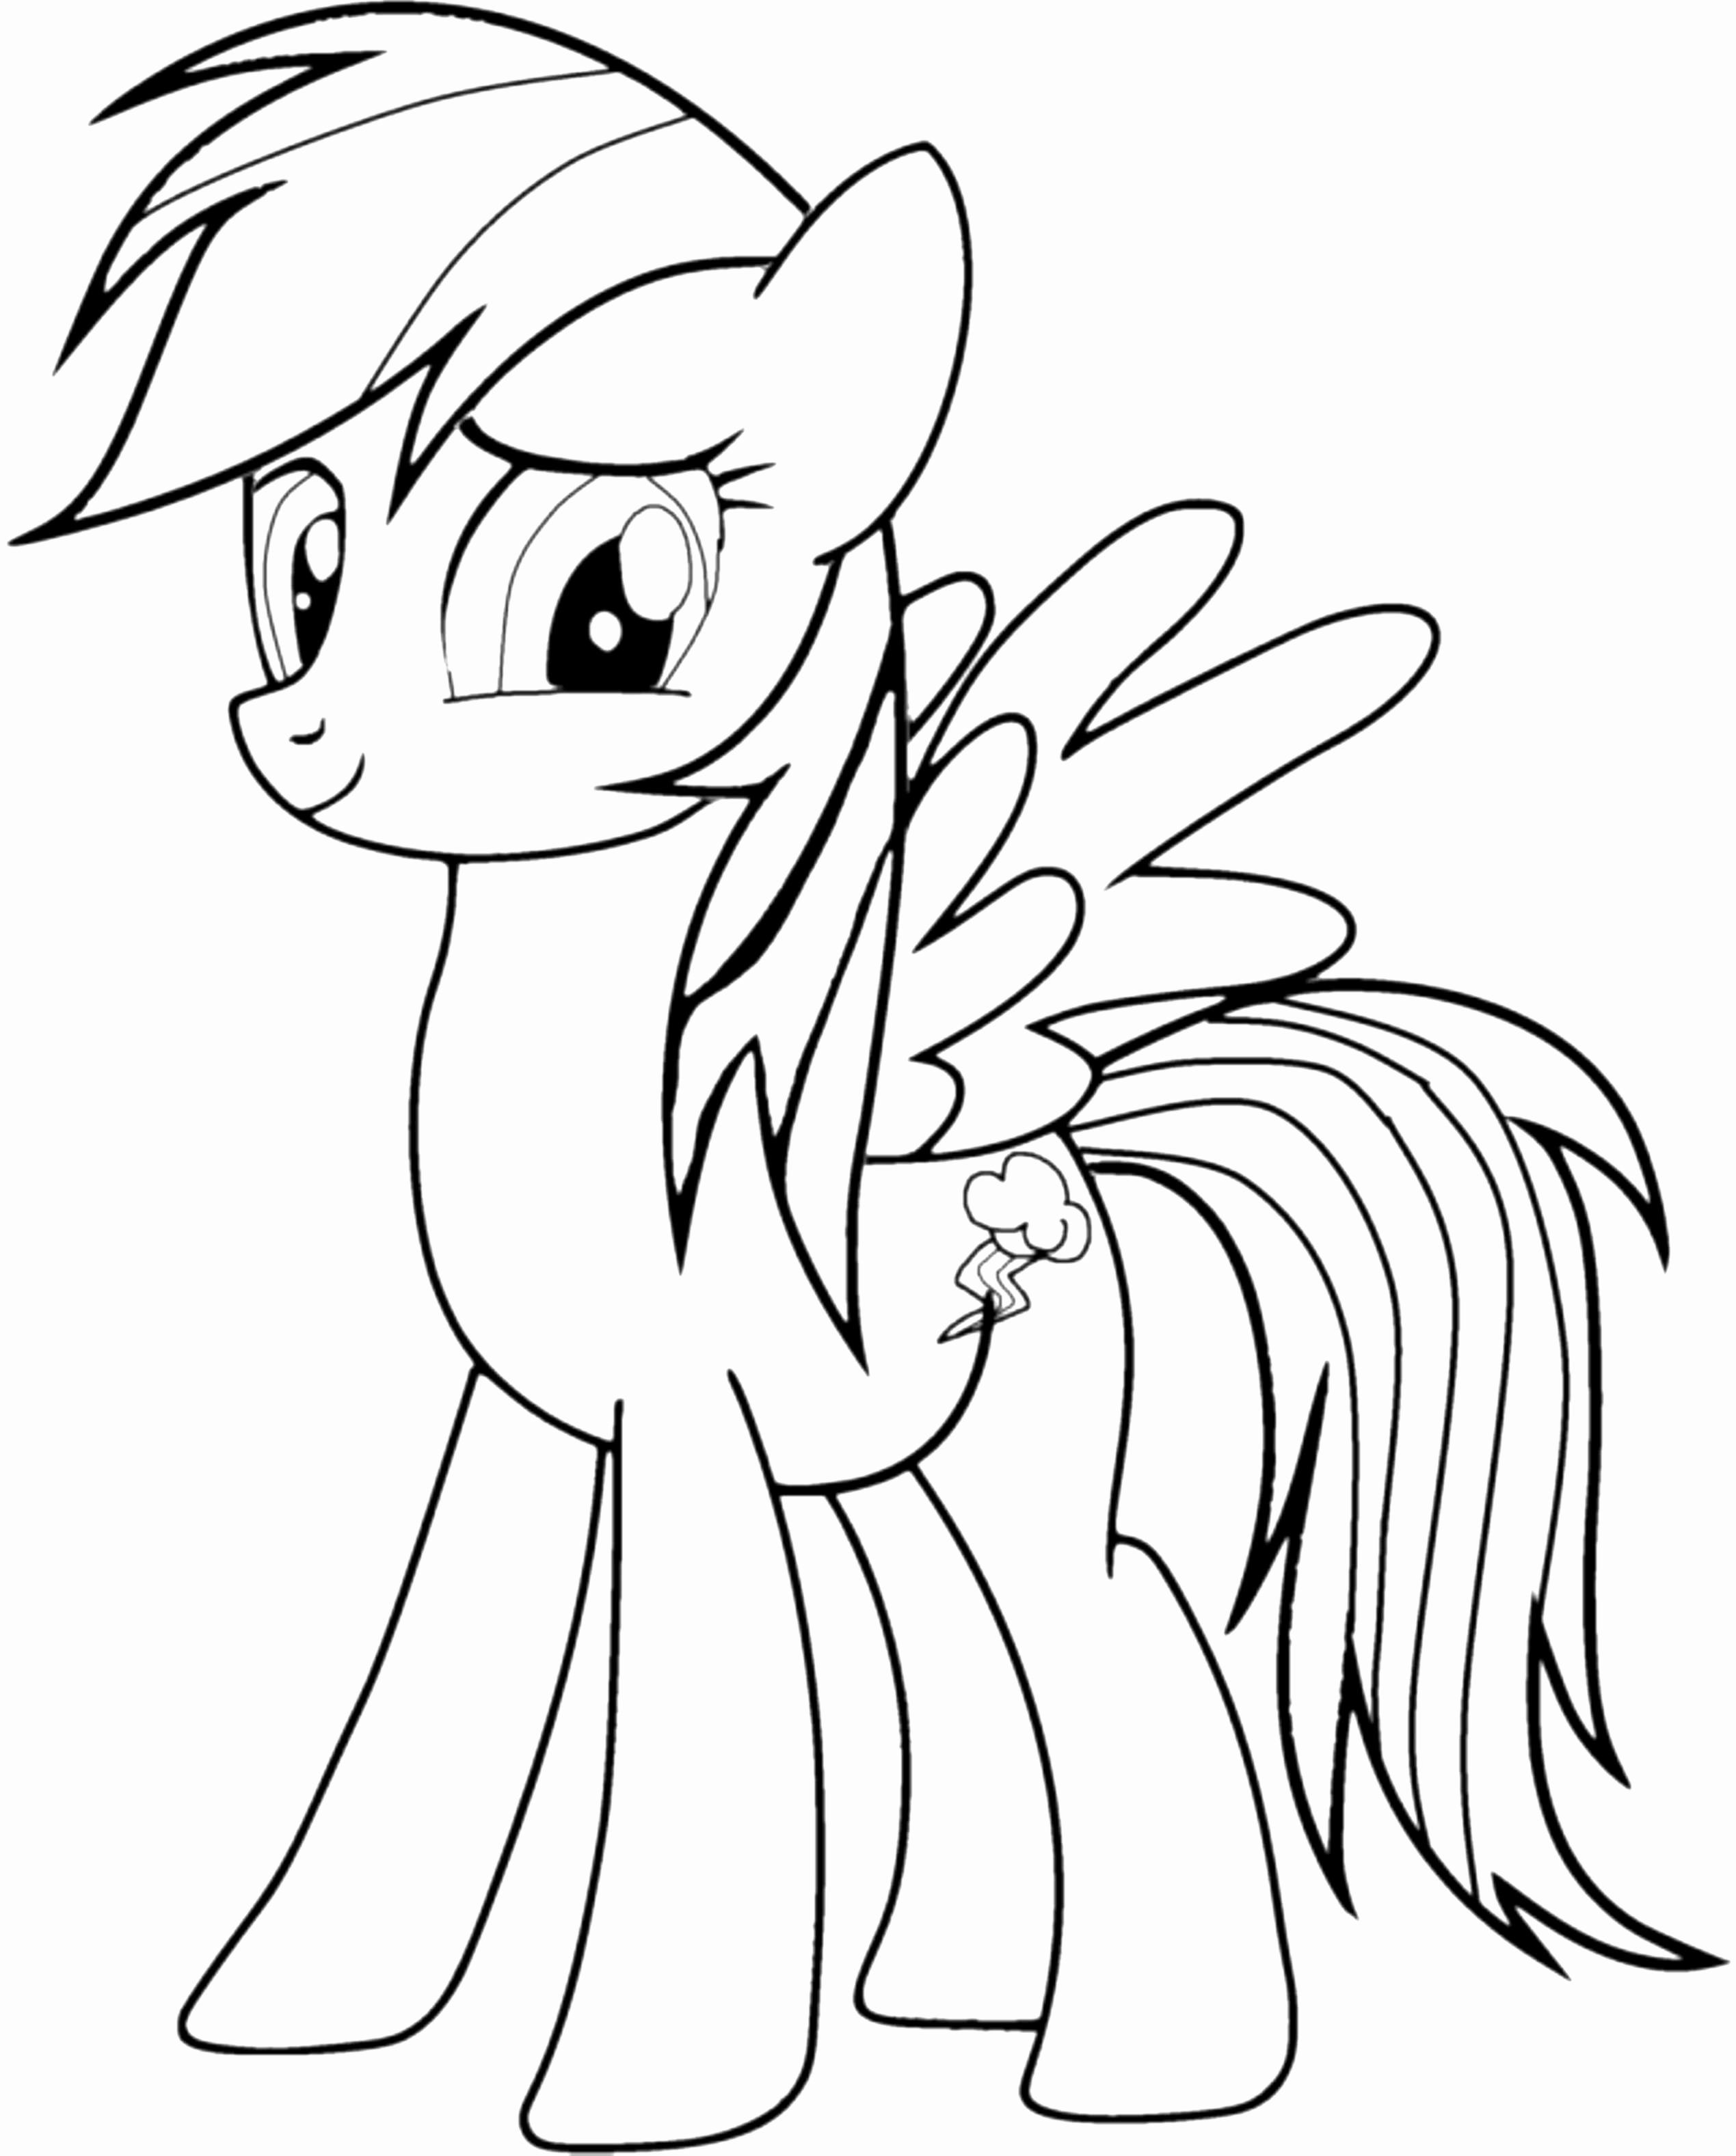 Printable Rainbow Coloring Sheet Beautiful Rainbow Dash Coloring Pages Best Coloring Pa My Little Pony Coloring My Little Pony Printable Unicorn Coloring Pages